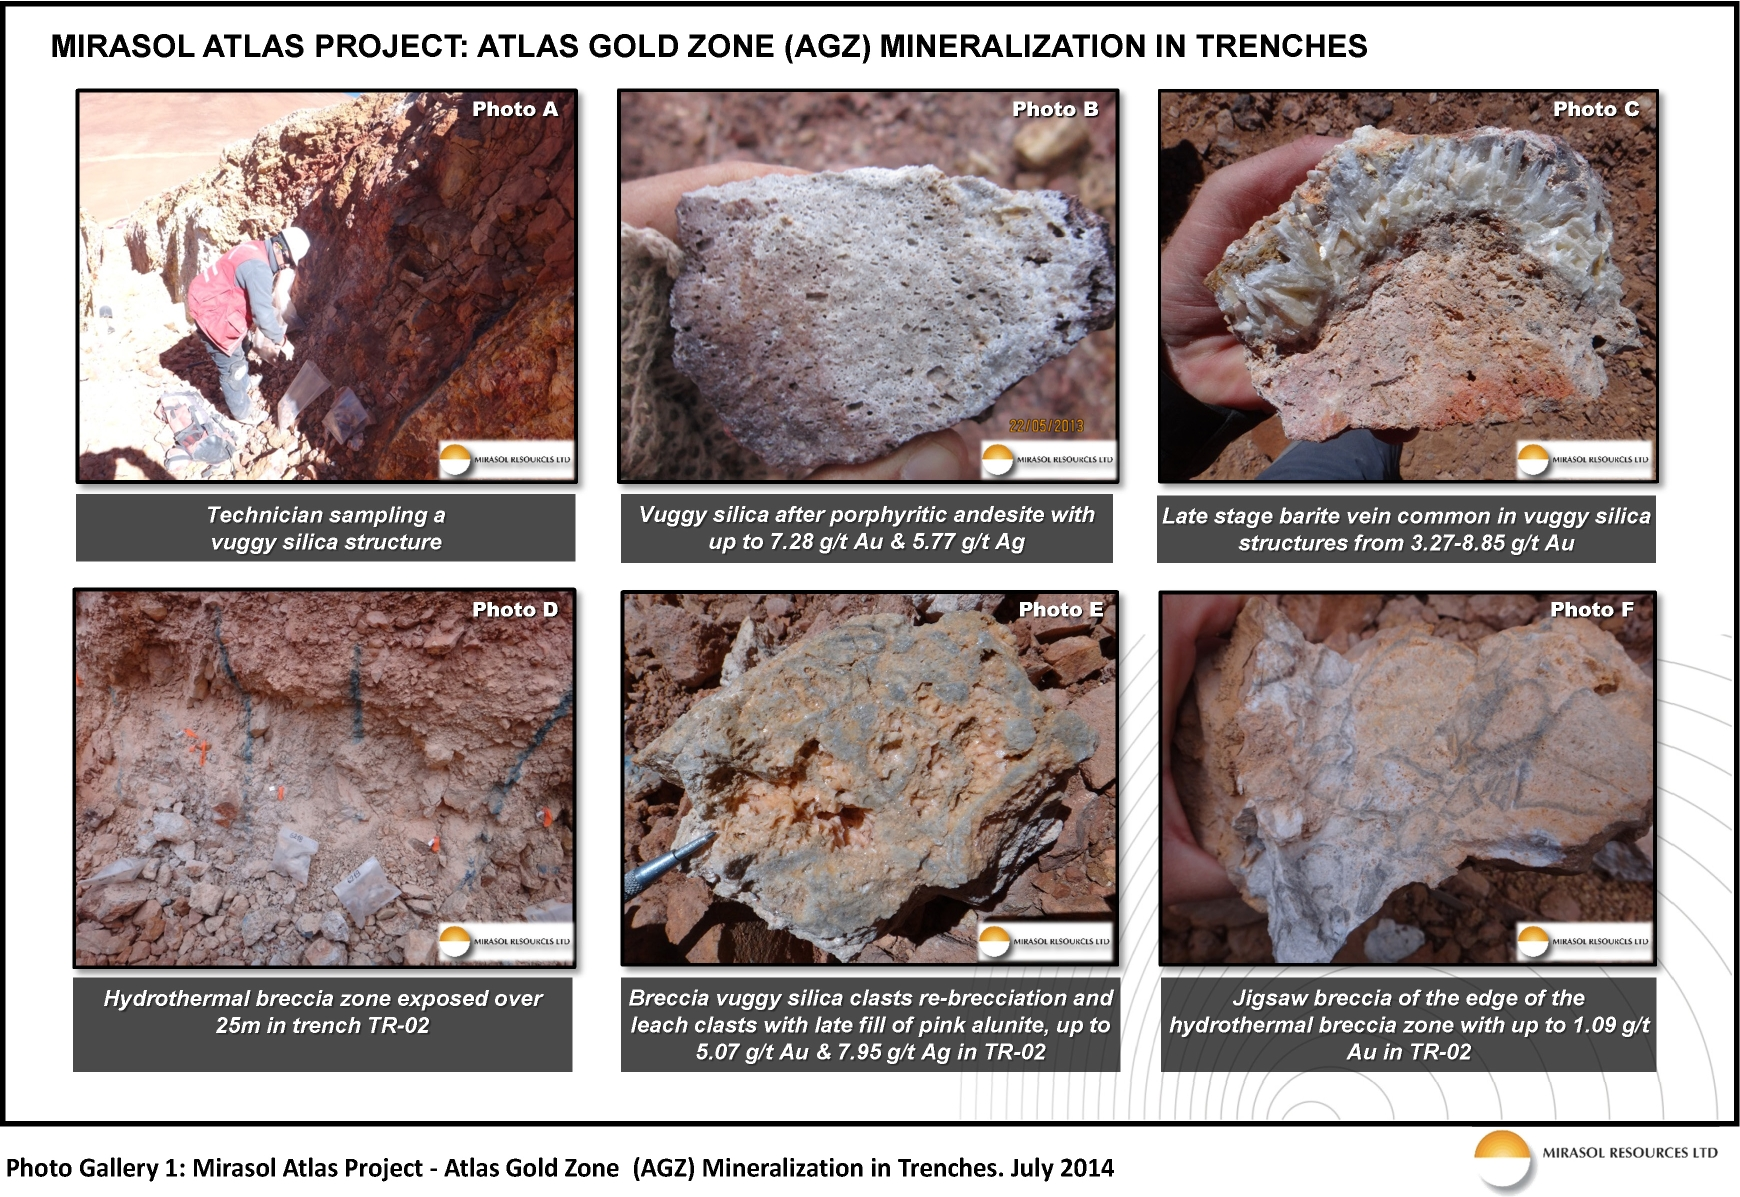 Photo Gallery 1: Mirasol Atlas Project – Atlas Gold Zone (AGZ) Mineralization in Trenches. July 2014